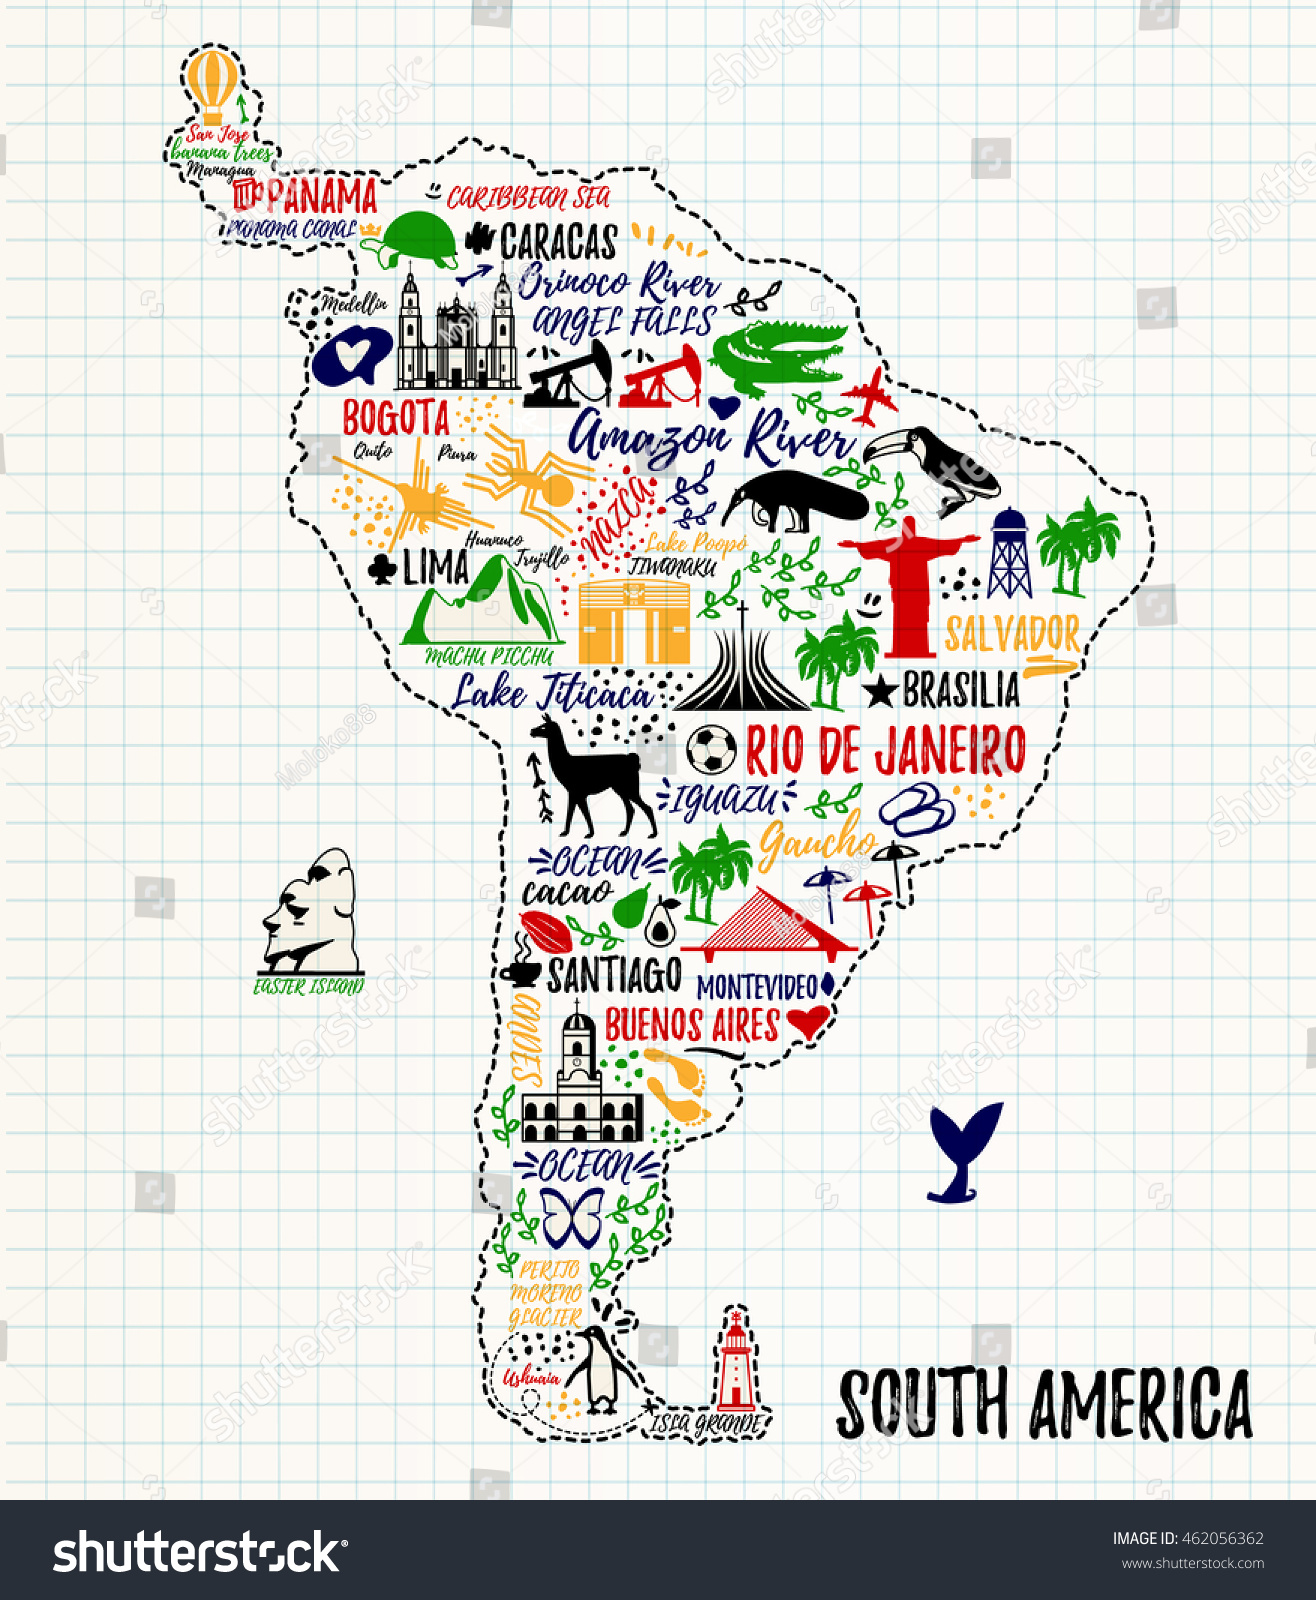 Typography poster south america map south vectores en stock south america map south america travel guide gumiabroncs Images